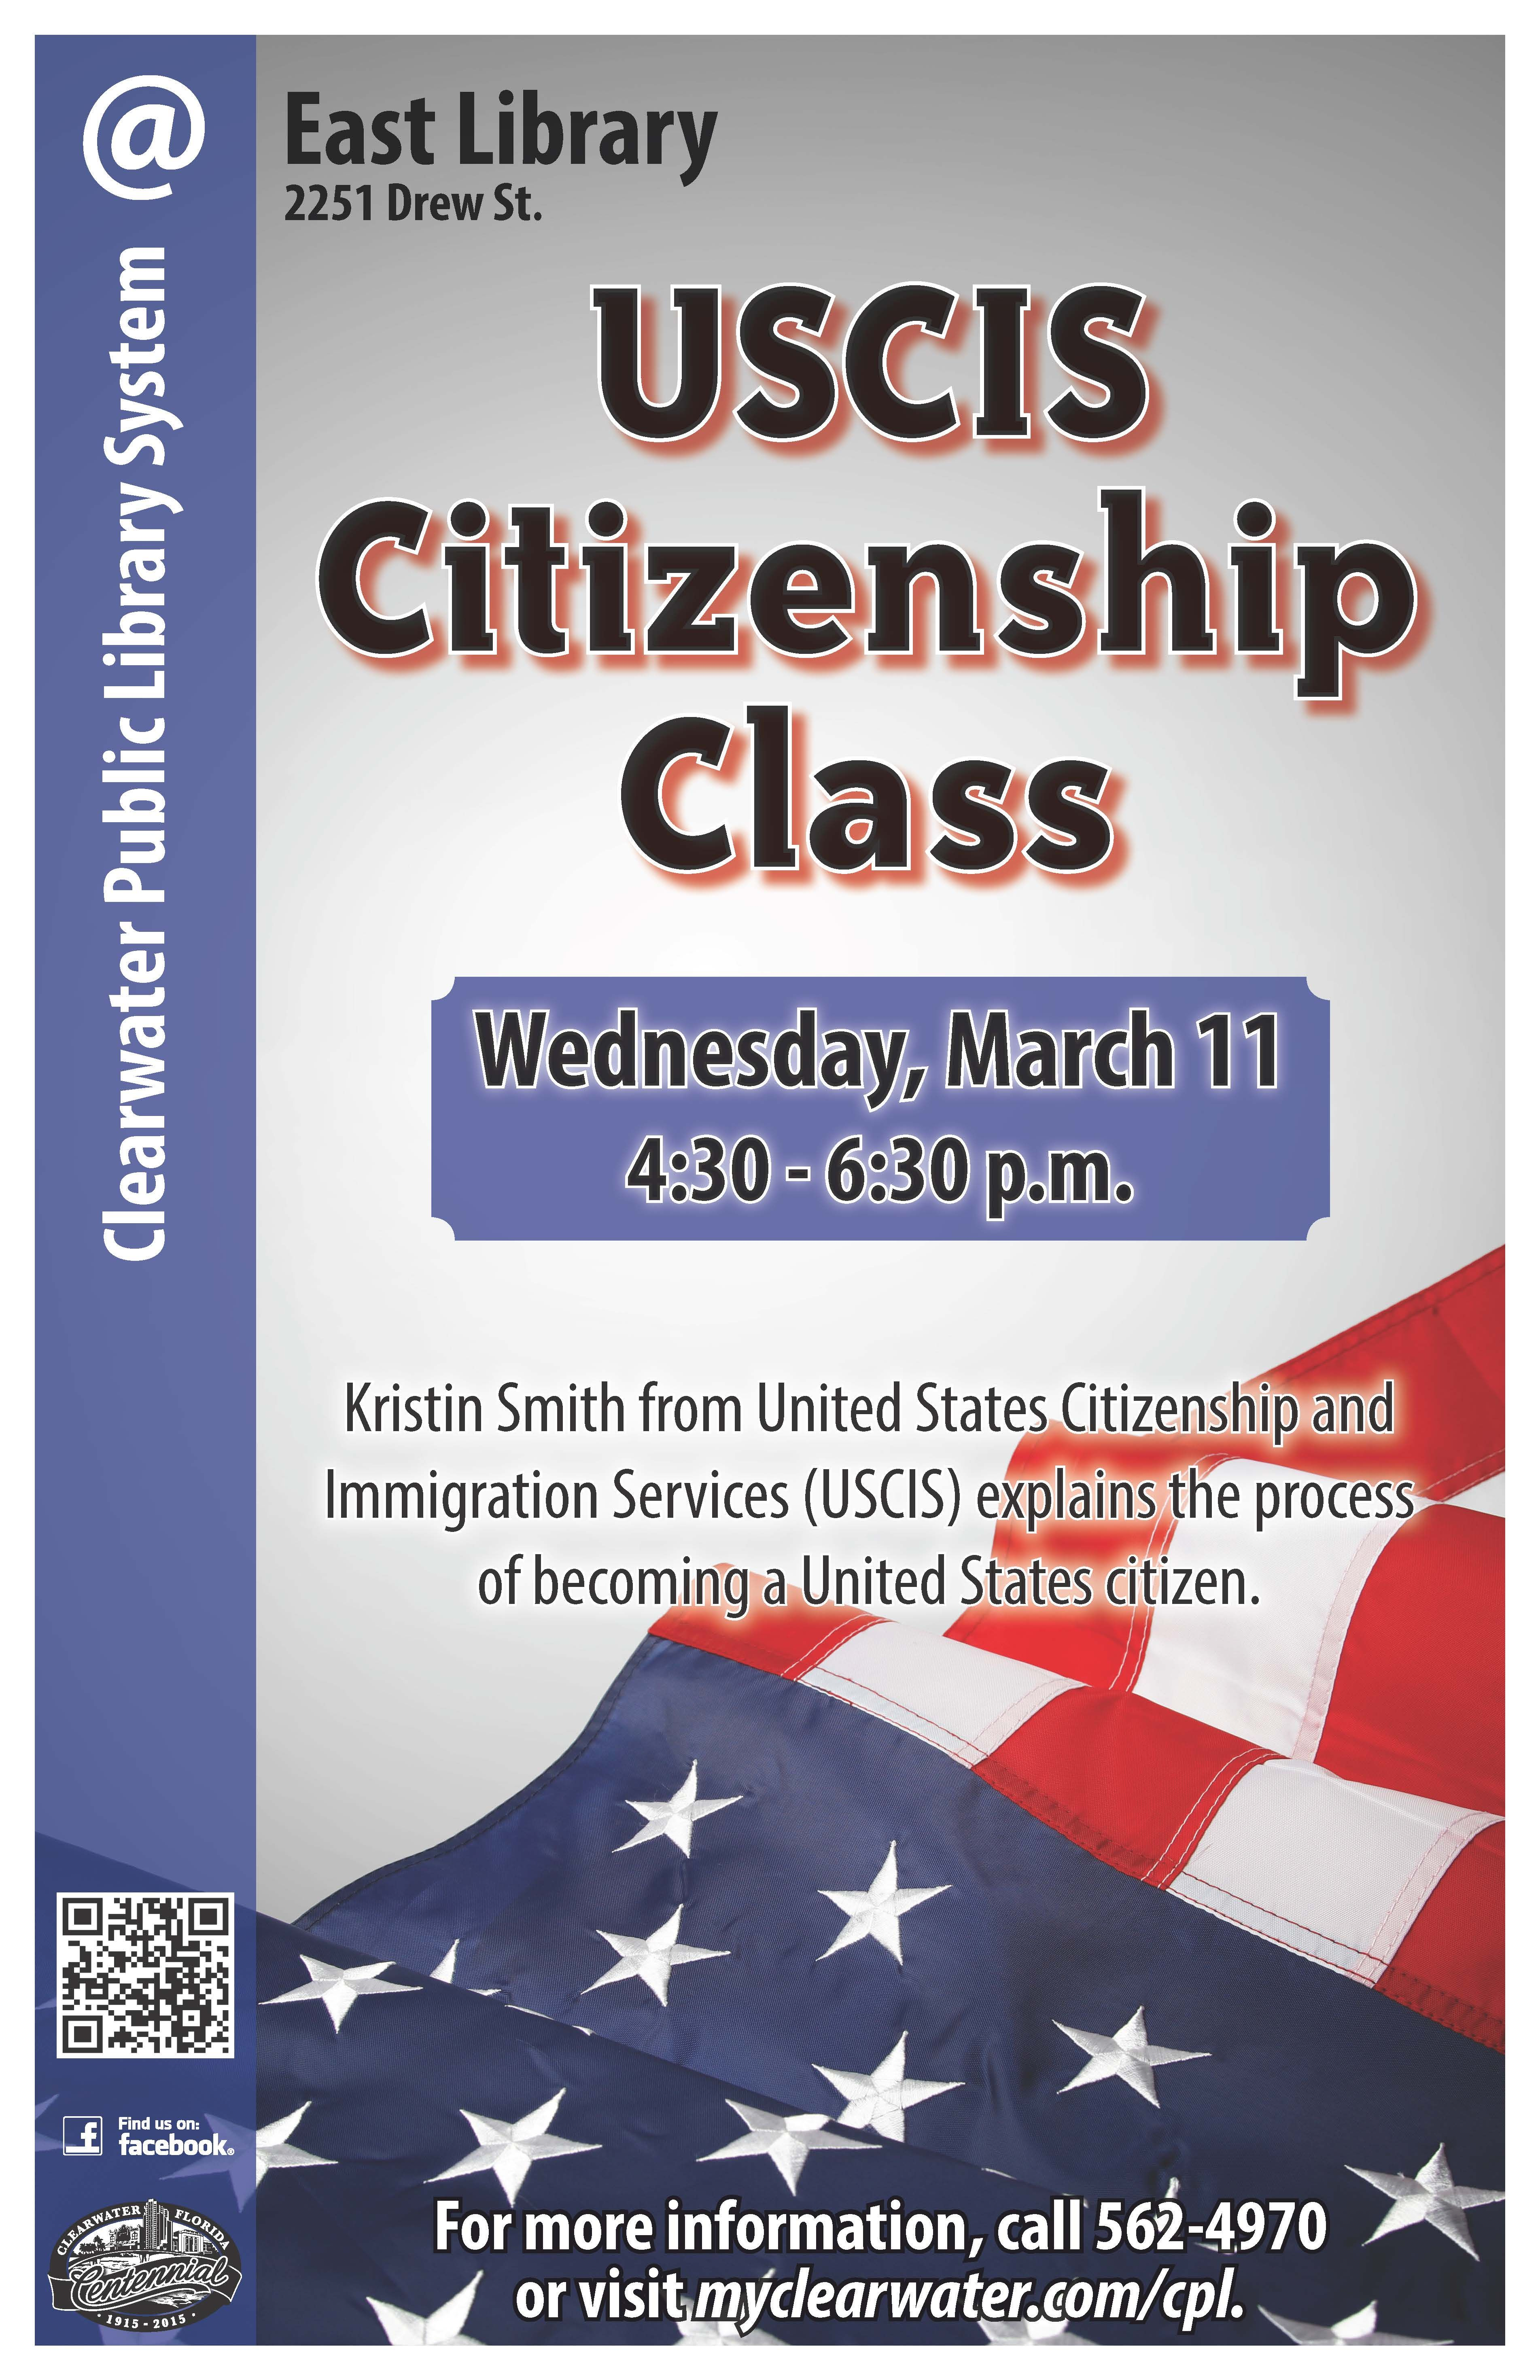 USCIS Citizenship Class: Kristen Smith explains the process